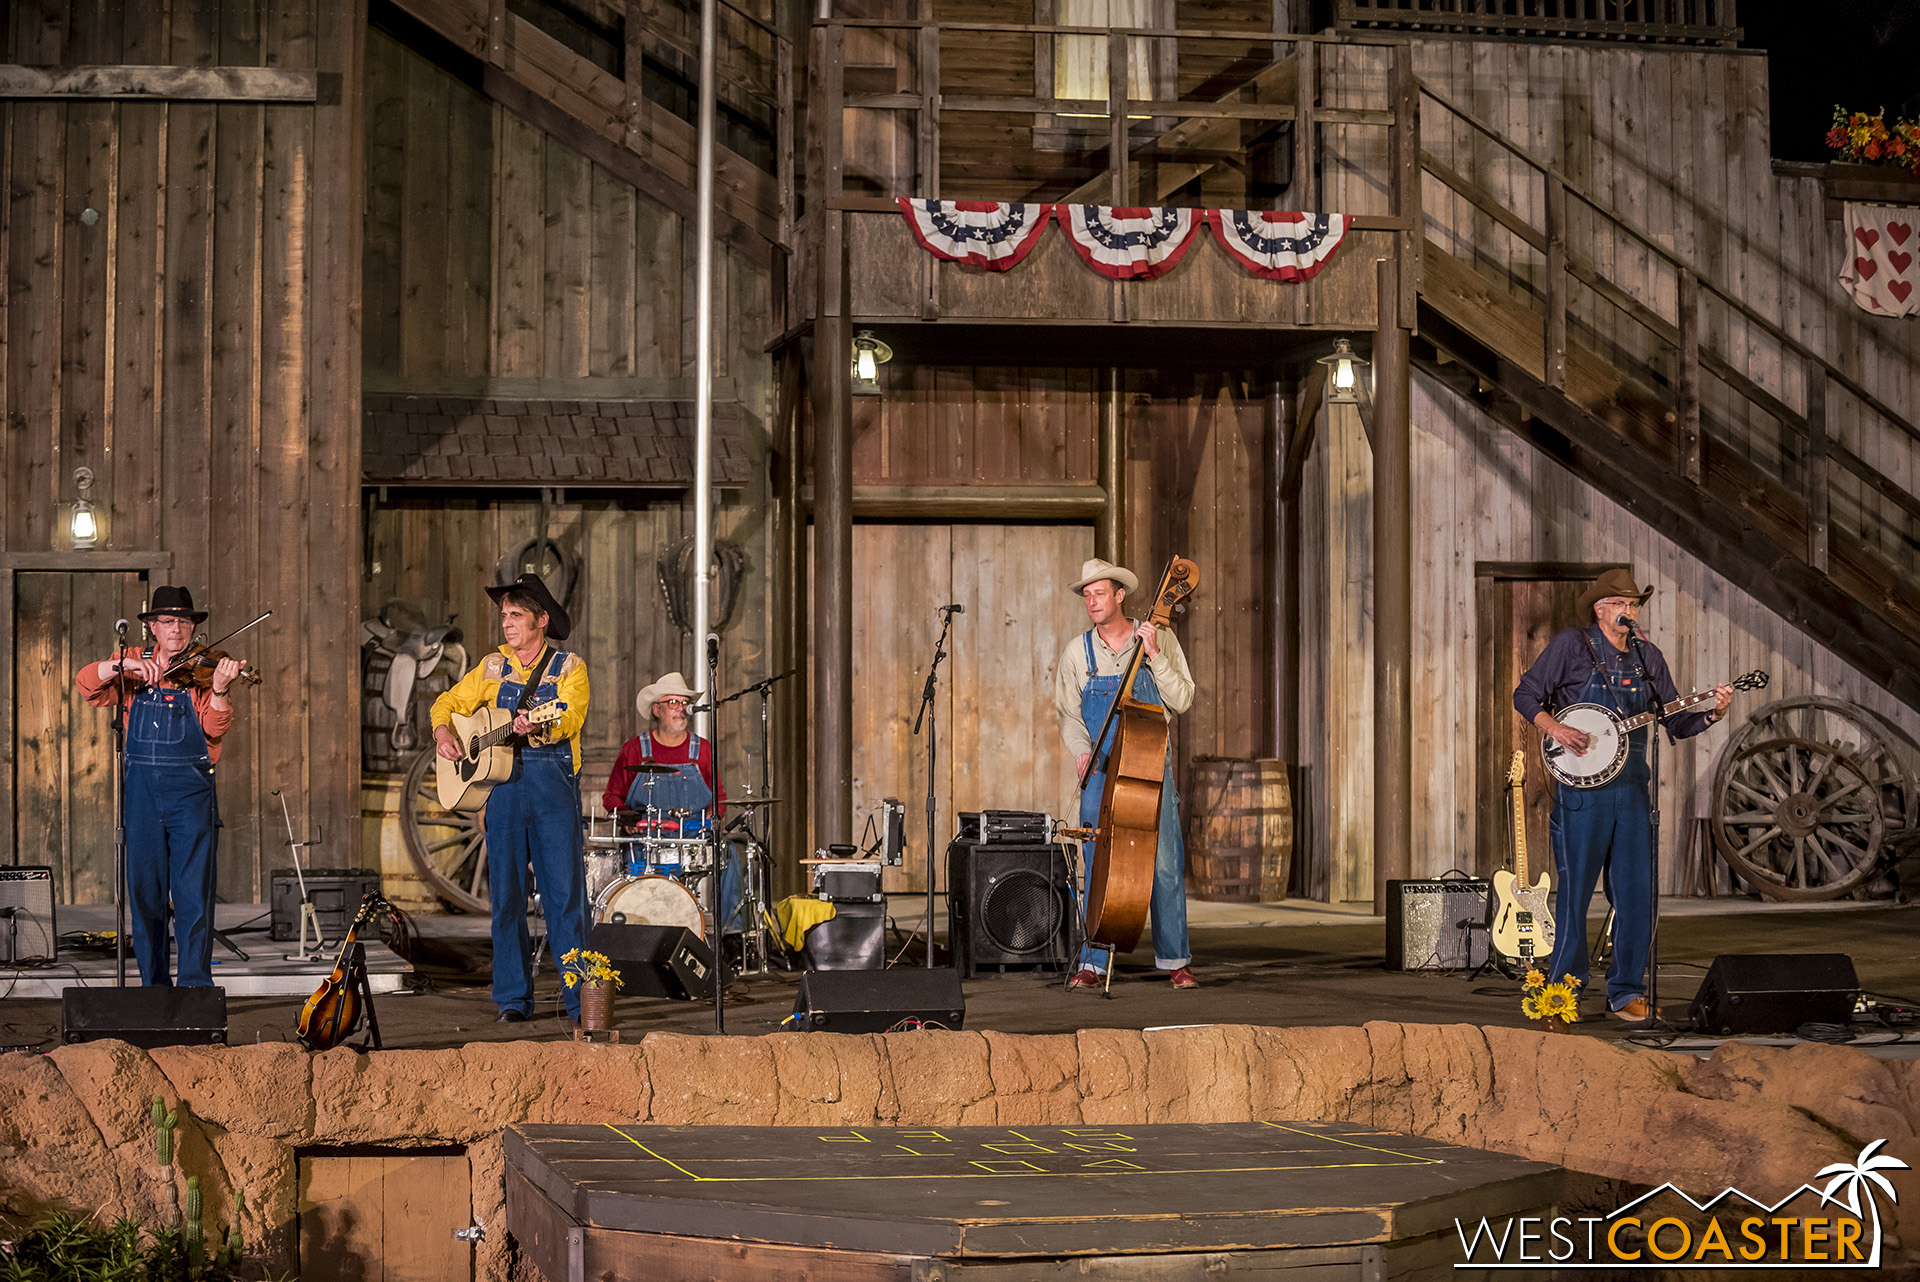 Krazy Kirk and the Hillbillies at the Wagon Camp.